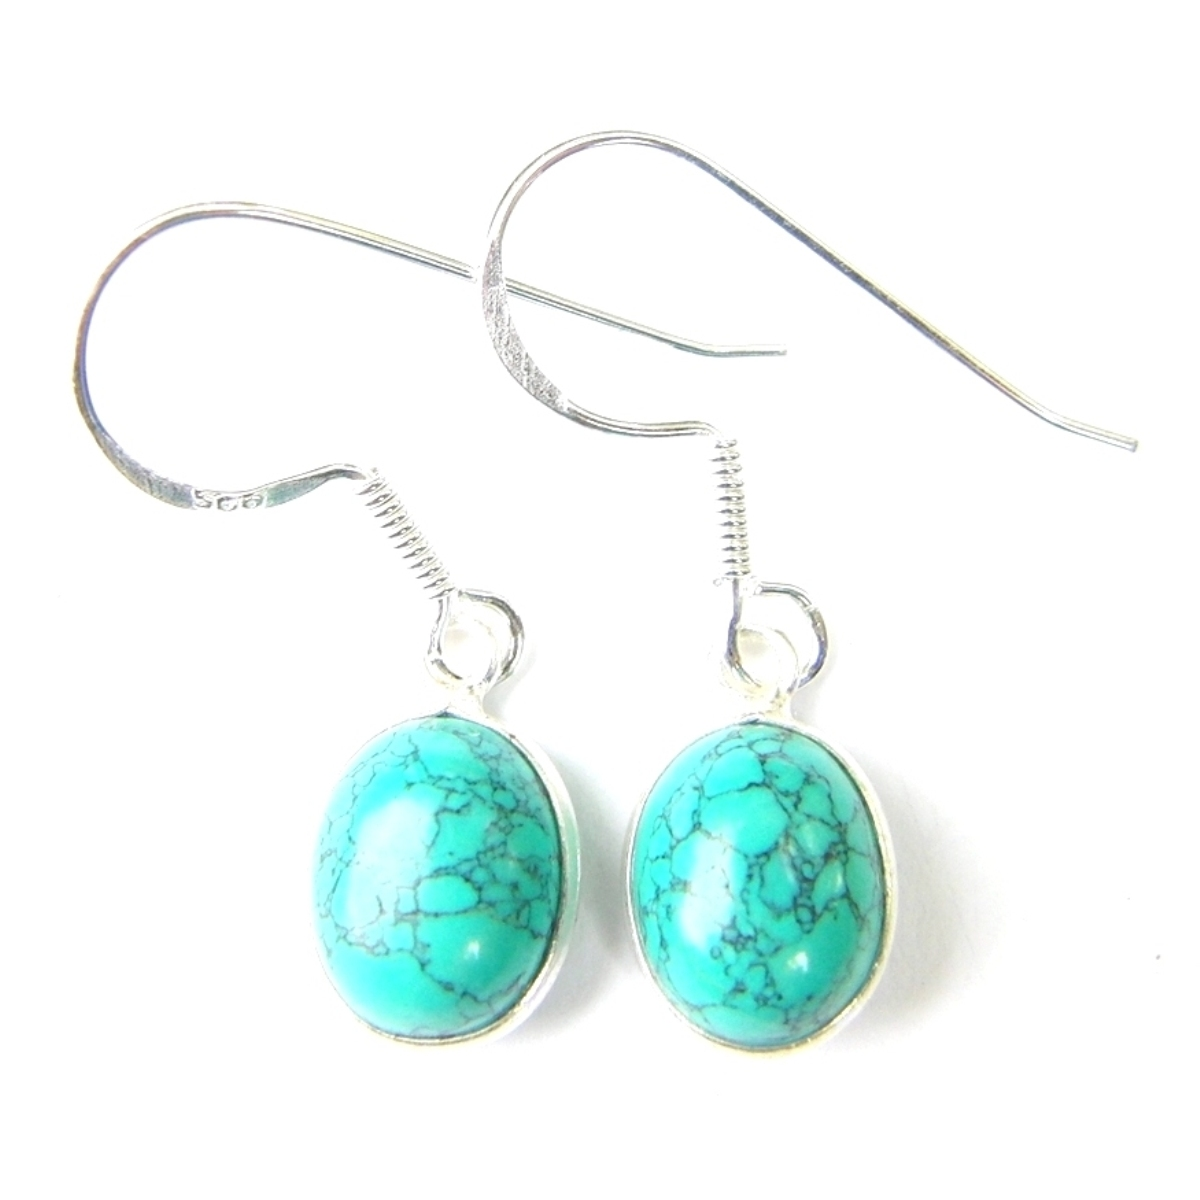 Turquoise Dainty Oval Earrings